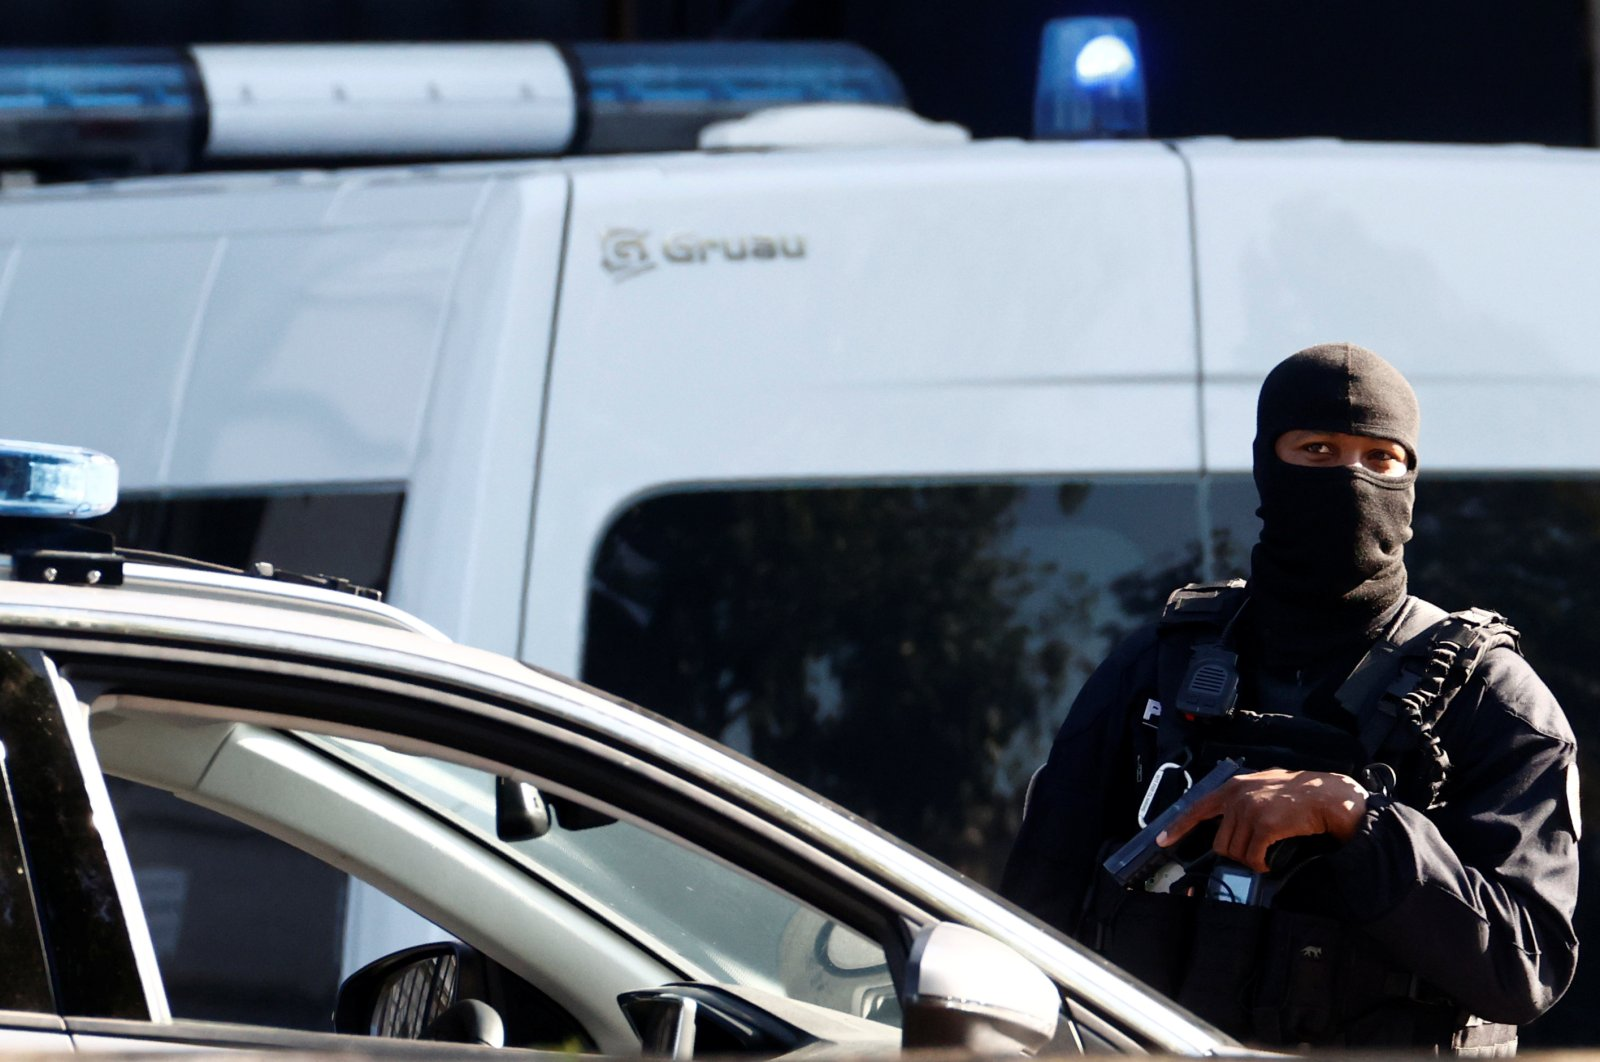 French police secure the Paris courthouse during the arrival of a convoy believed to be carrying the defendants standing trial over Paris' November 2015 attacks, in Paris, France, Sept. 8, 2021. (Reuters Photo)